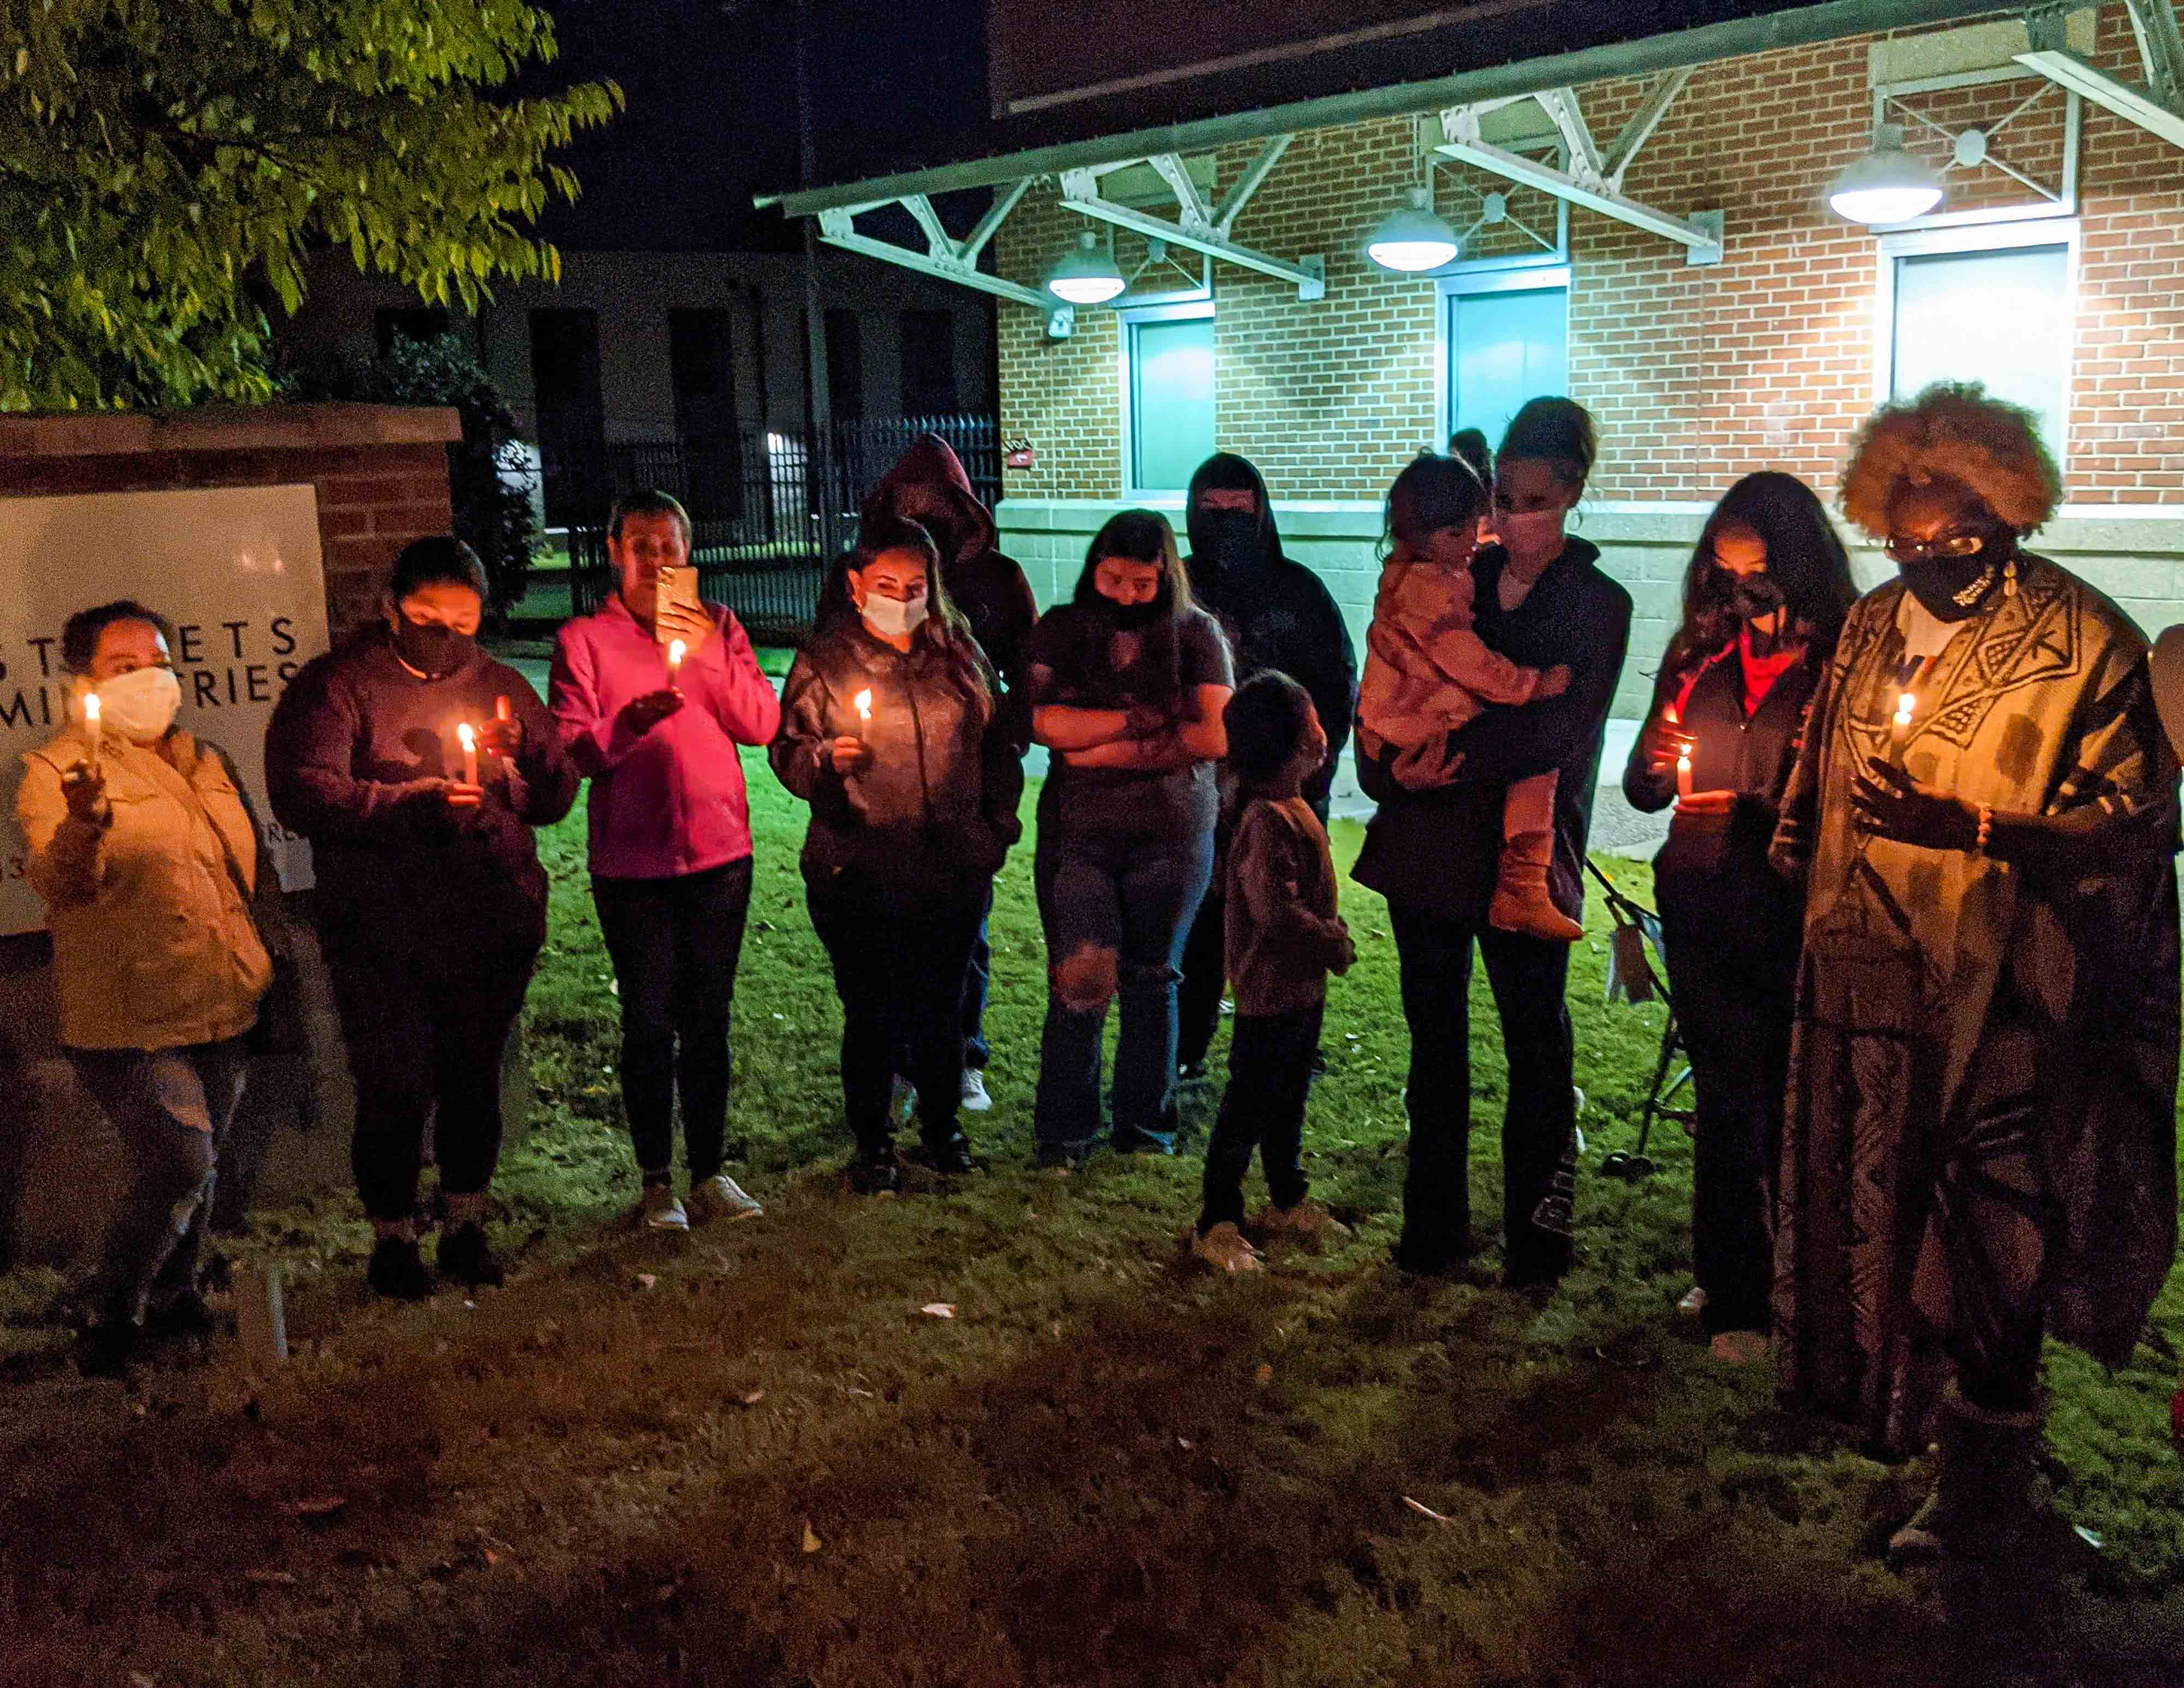 About a dozen people stand outside at night in a semi-circle holding candles during a candlelight vigil in front of a community center.